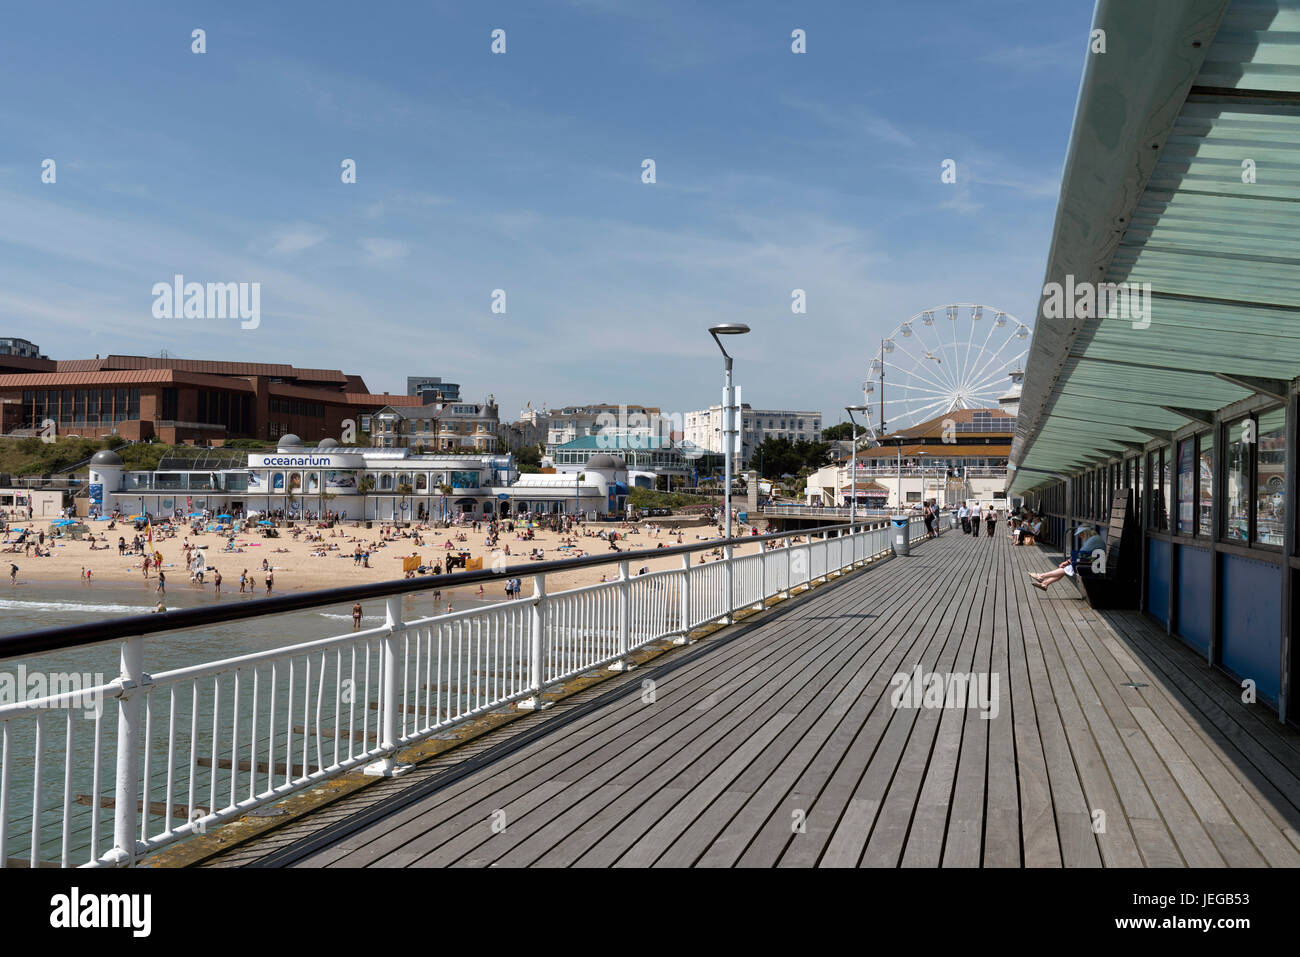 The pier and beach at Bournemouth a popular seaside resort in southern England UK. June 2017 - Stock Image